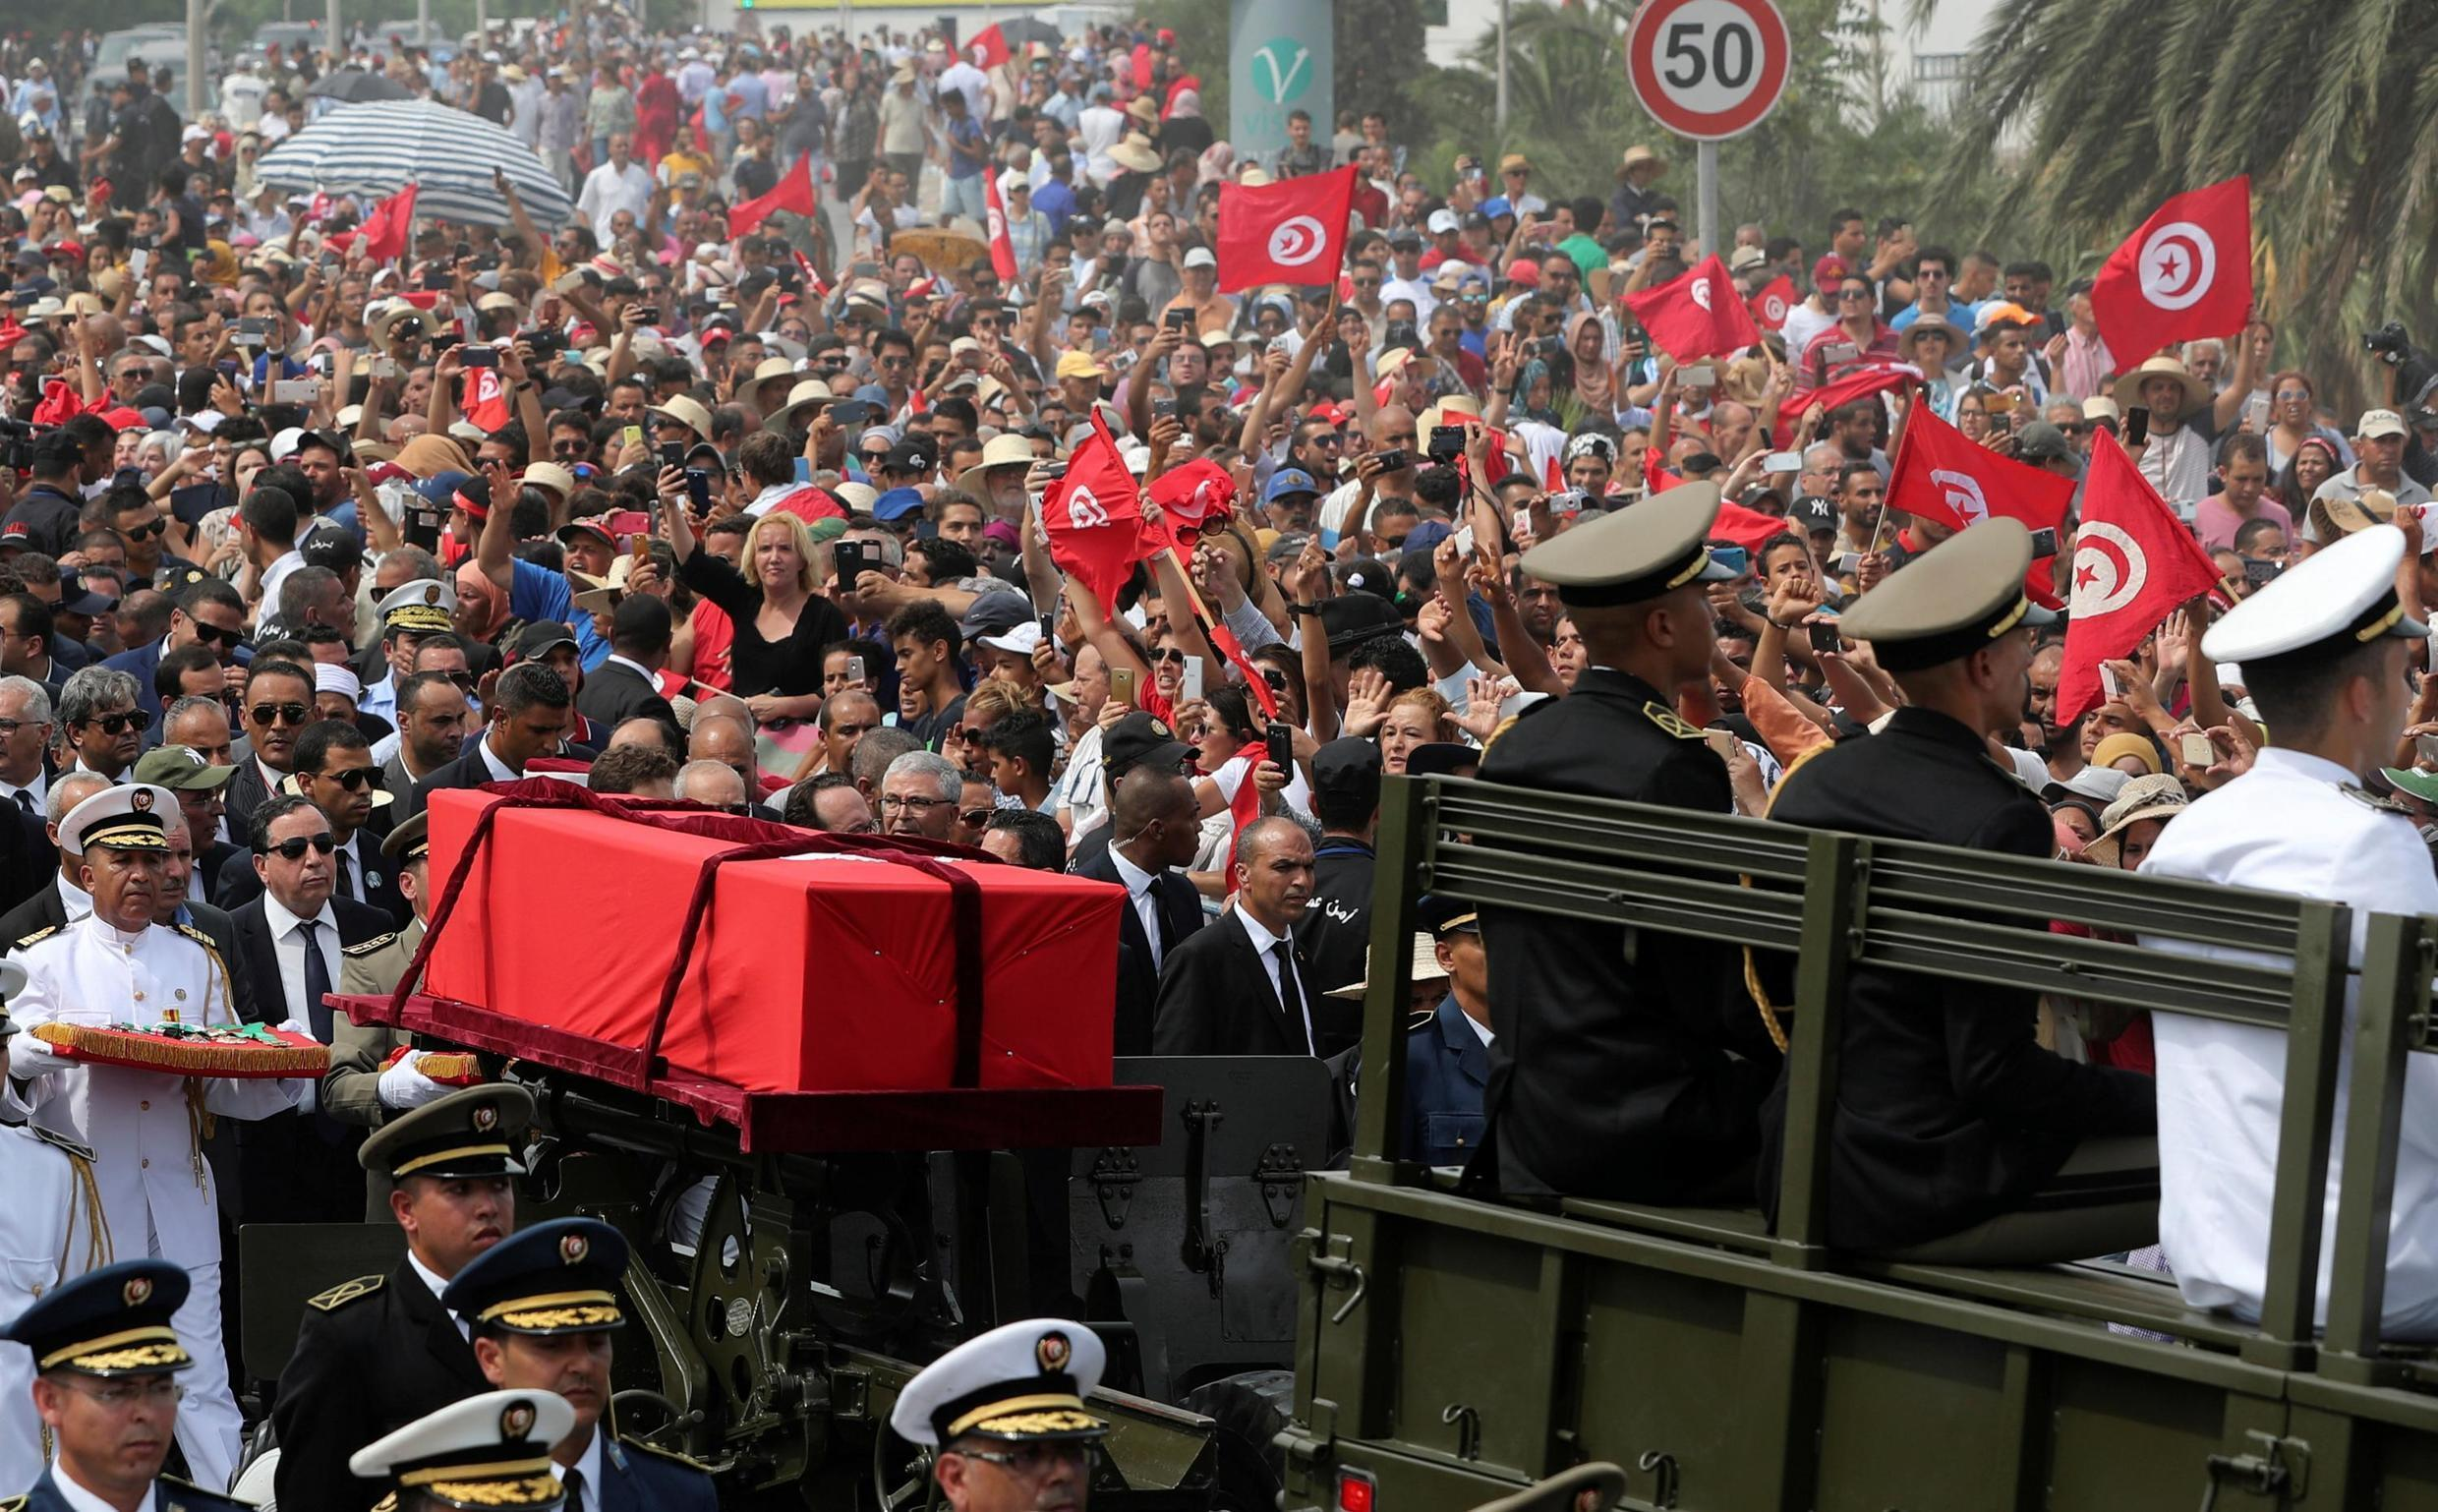 Military officers escort the coffin of late Tunisian President Beji Caid Essebsi during his funeral in Tunis, Tunisia July 27, 2019.